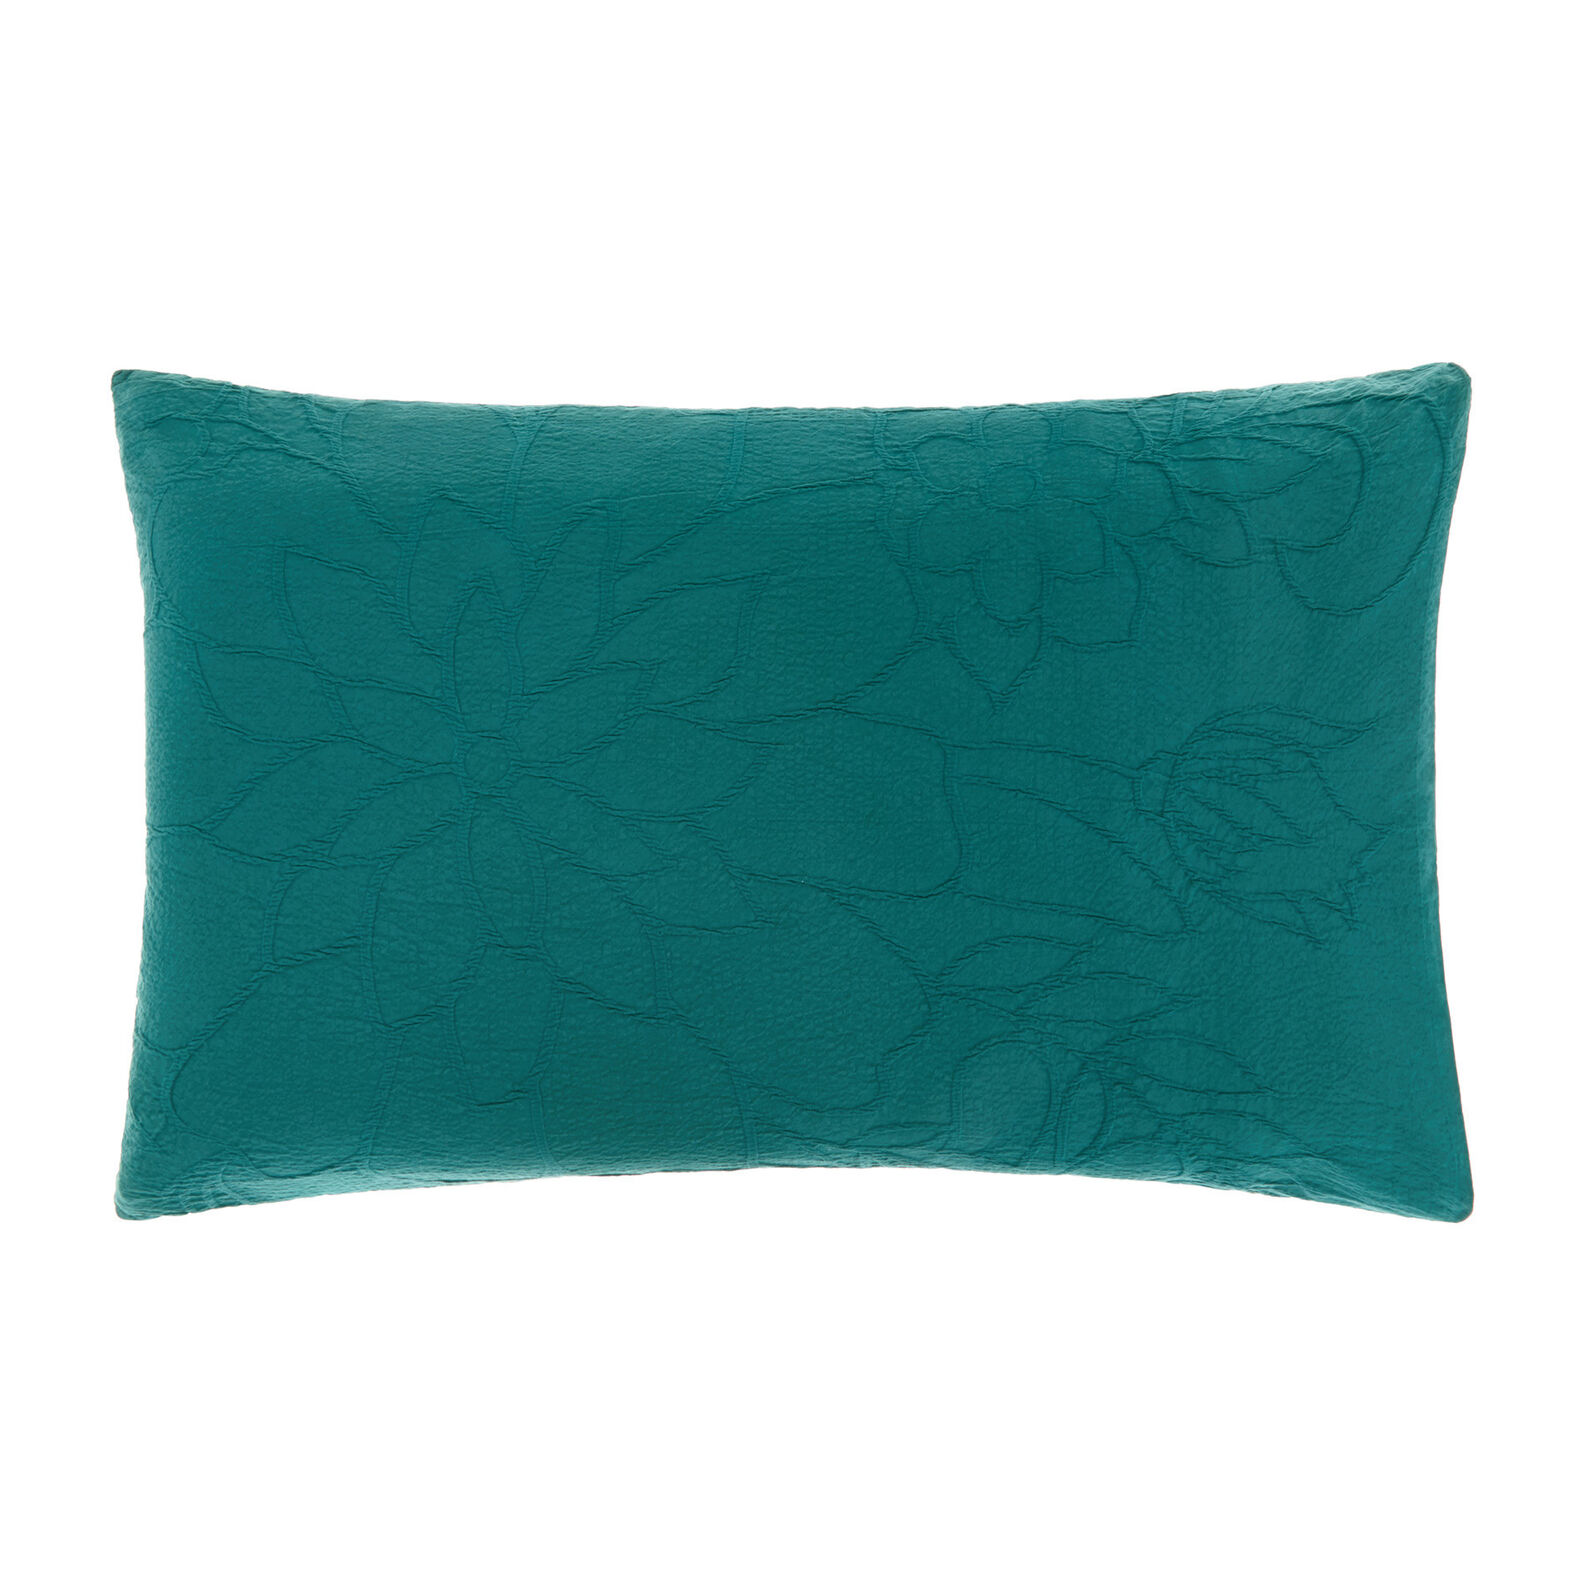 Cotton pillowcase with embossed floral pattern